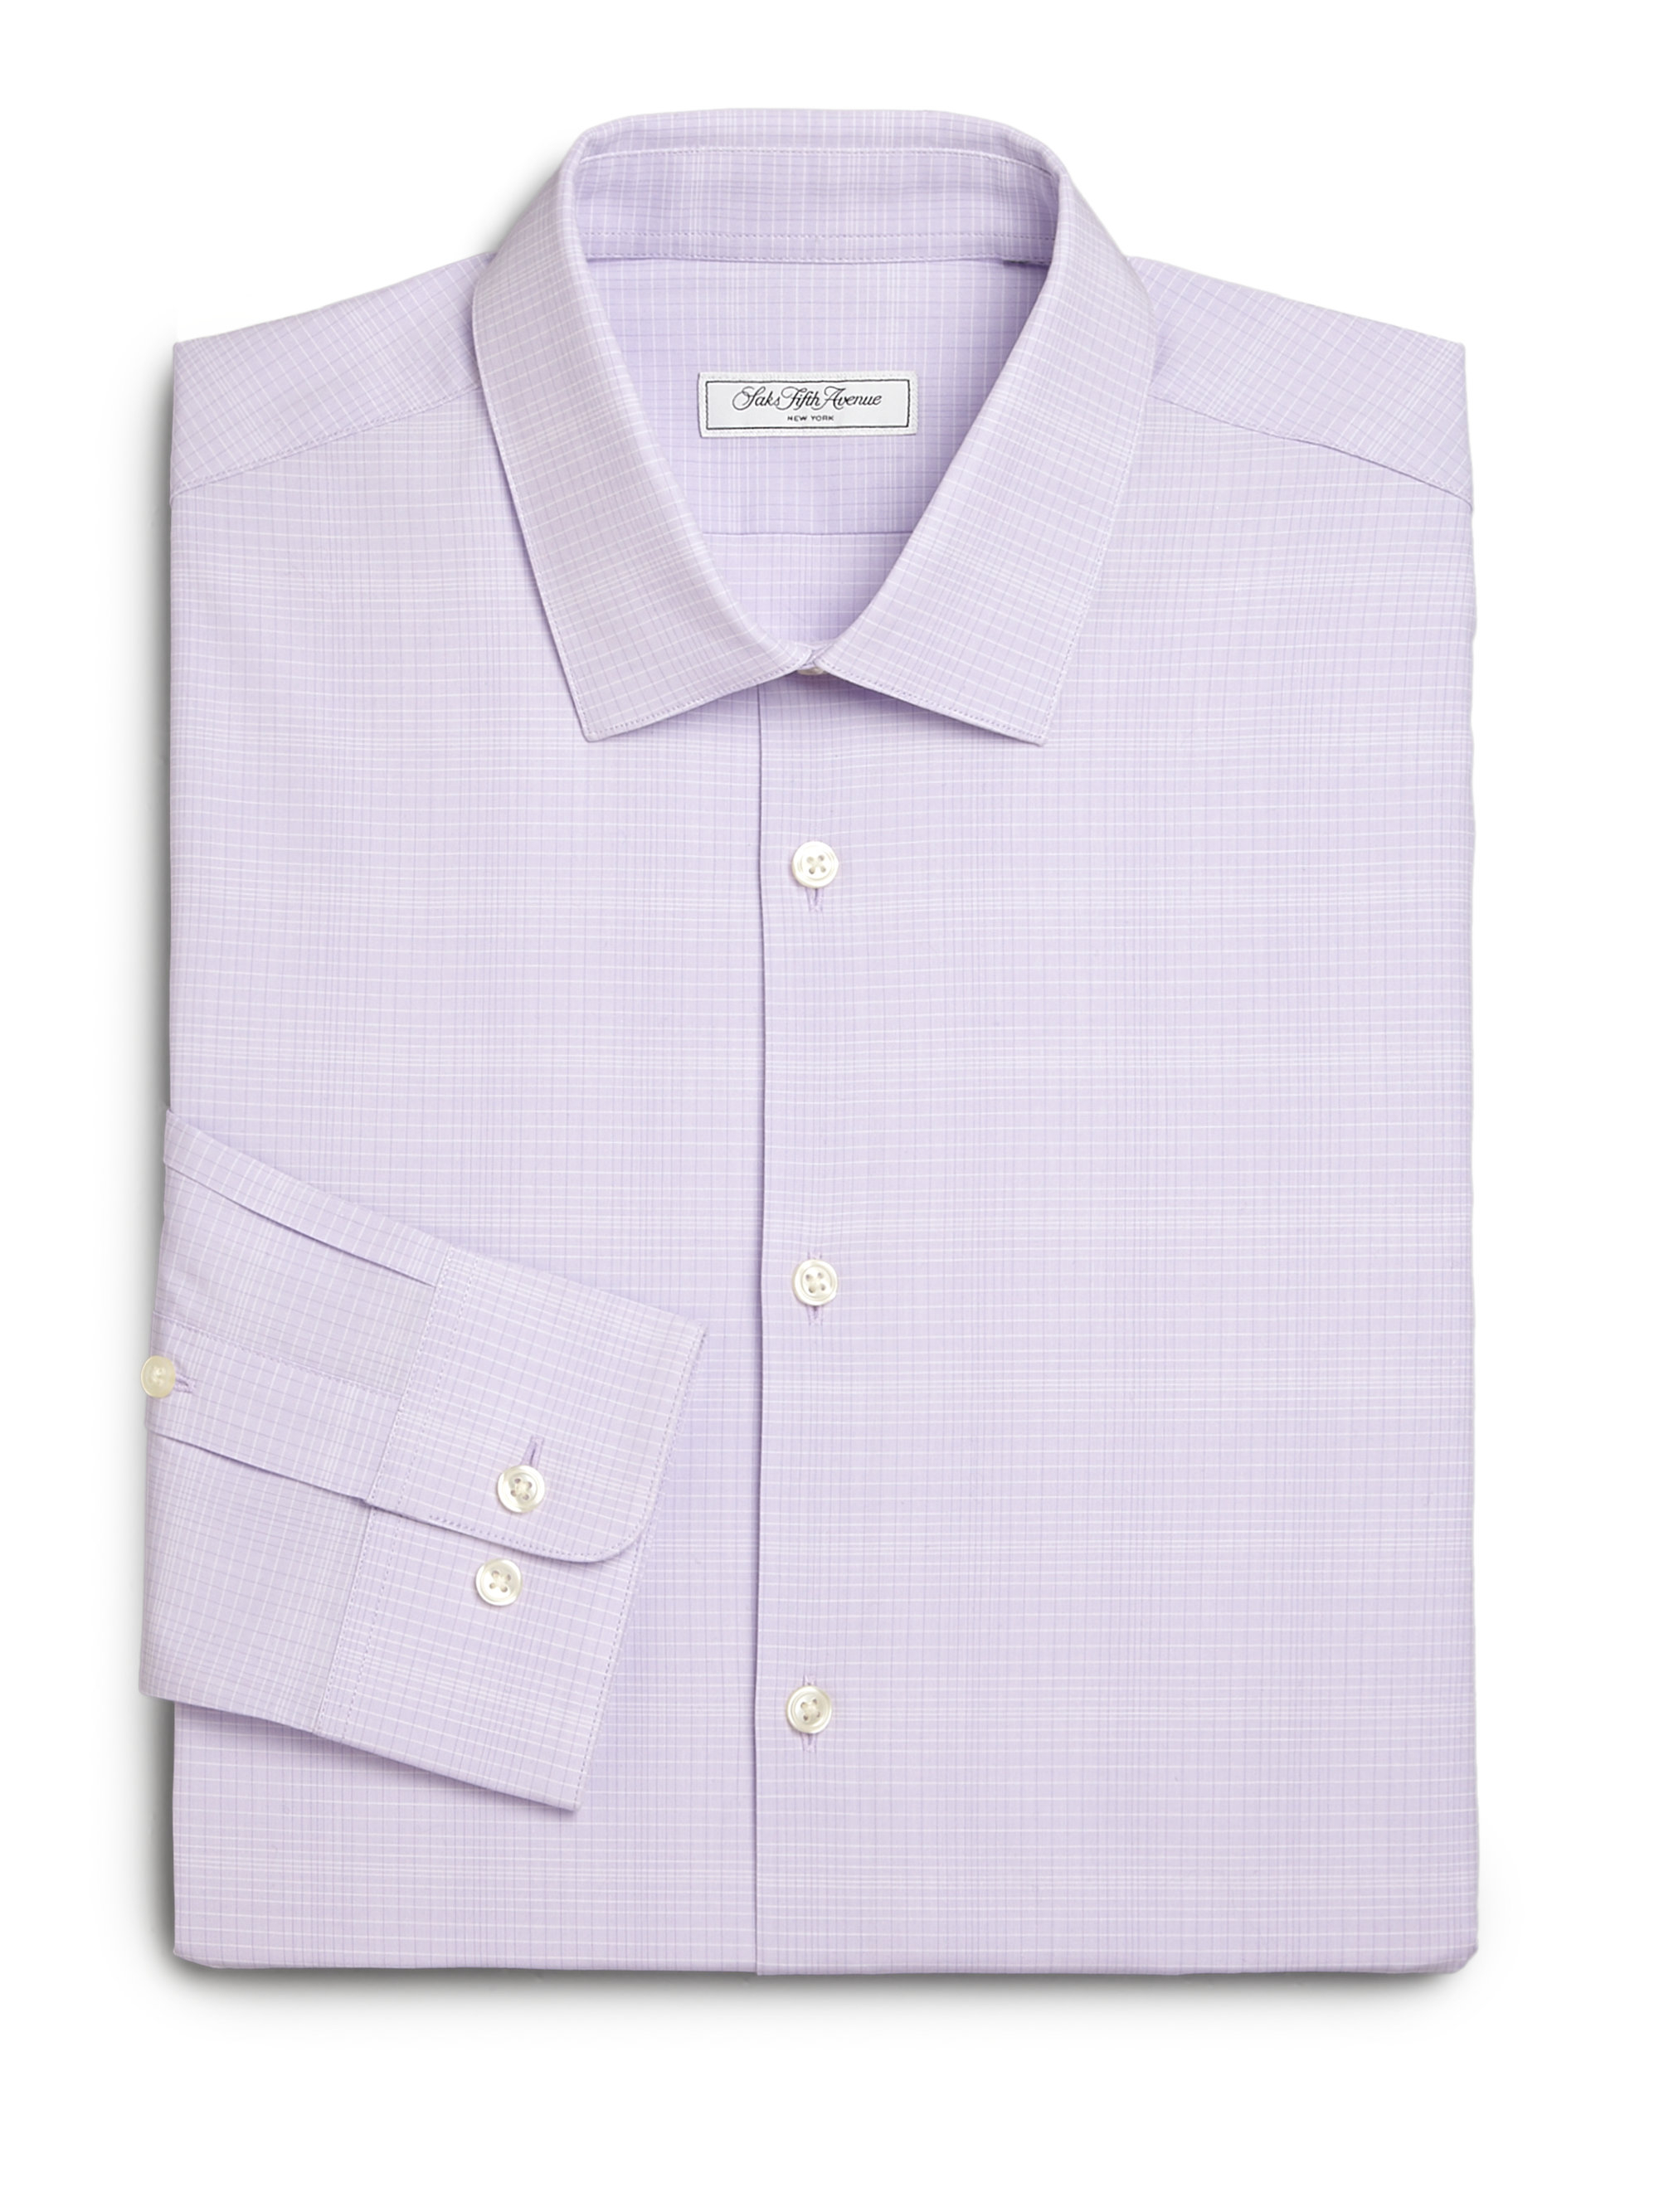 Saks fifth avenue modern fit checked dress shirt in purple for Modern fit dress shirt